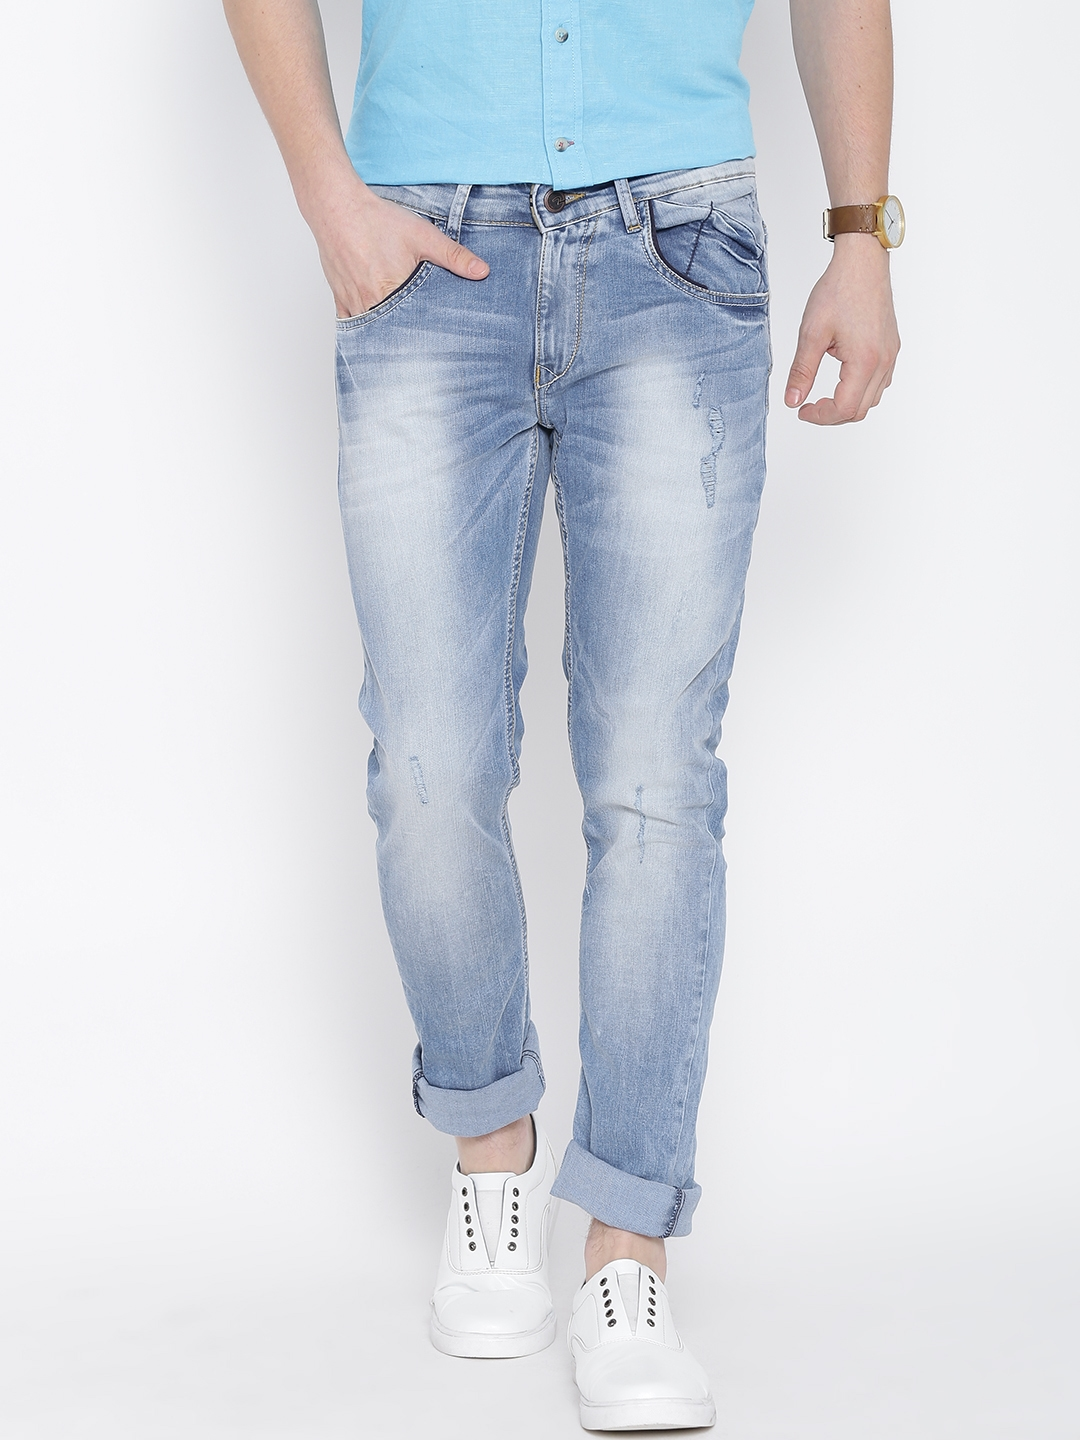 52f1cf7d1d54 SPYKAR Blue Washed Rover Fit Stretchable Jeans